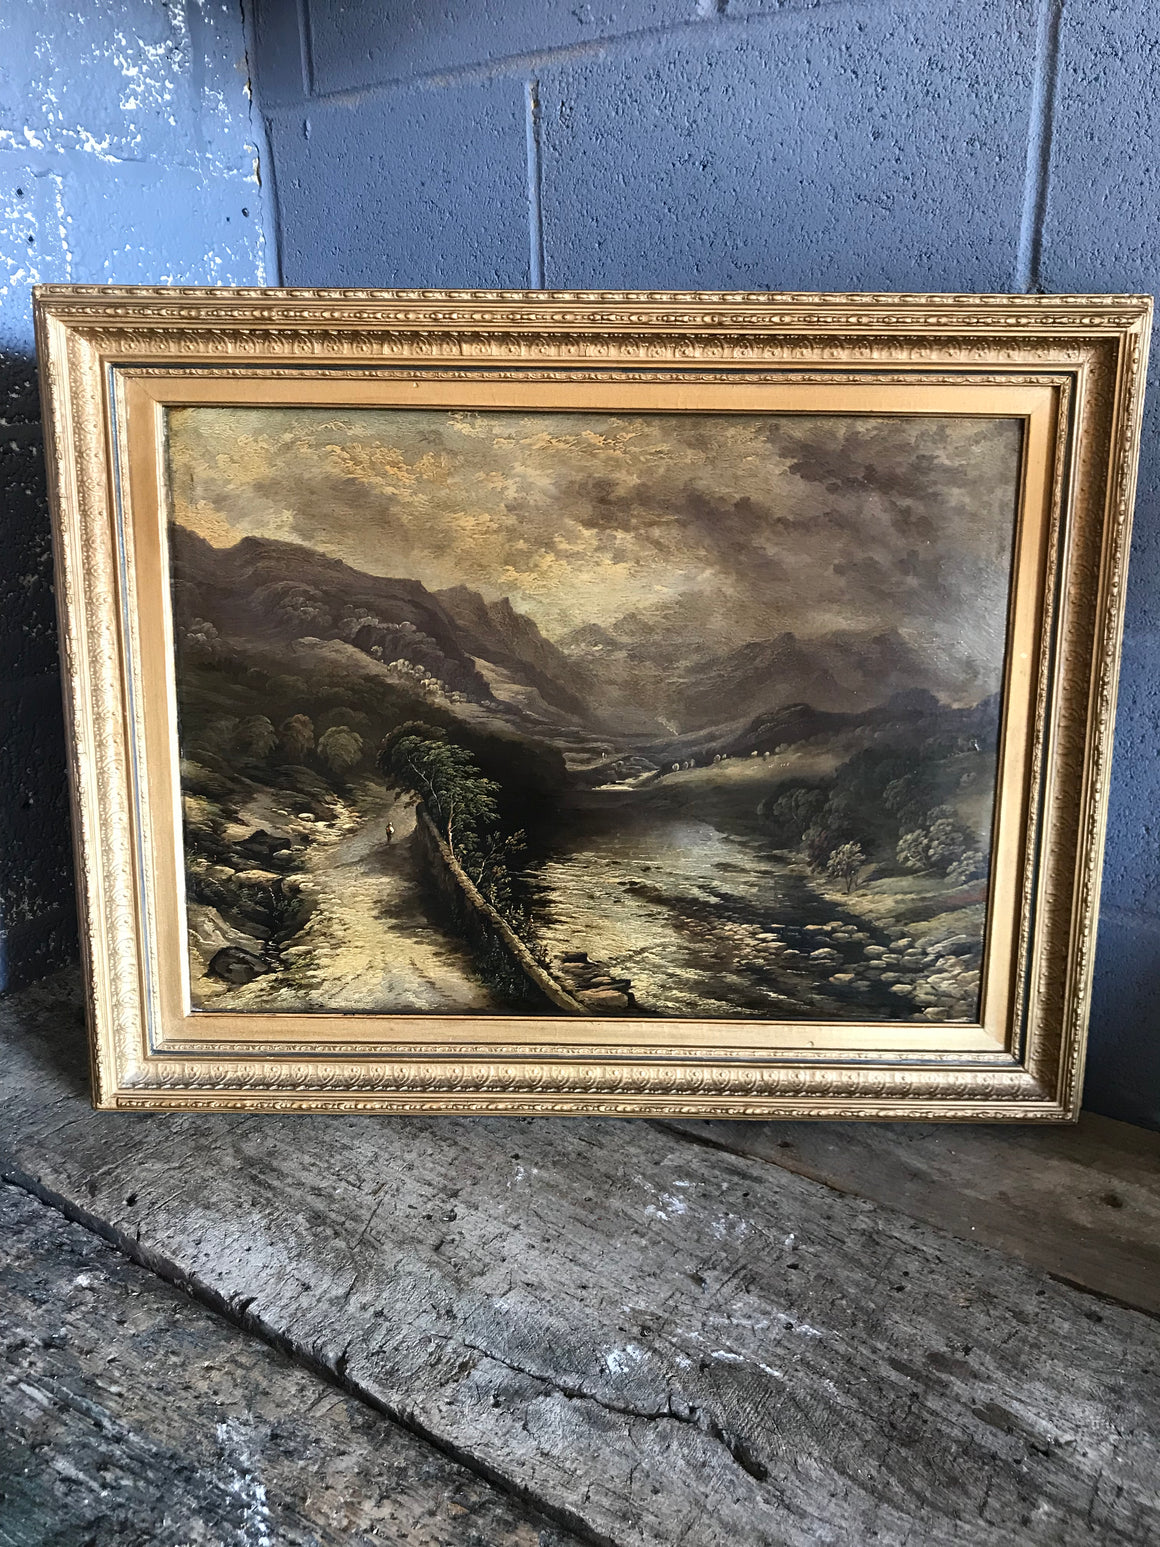 A 19th Century landscape oil painting depicting a mountain and river setting